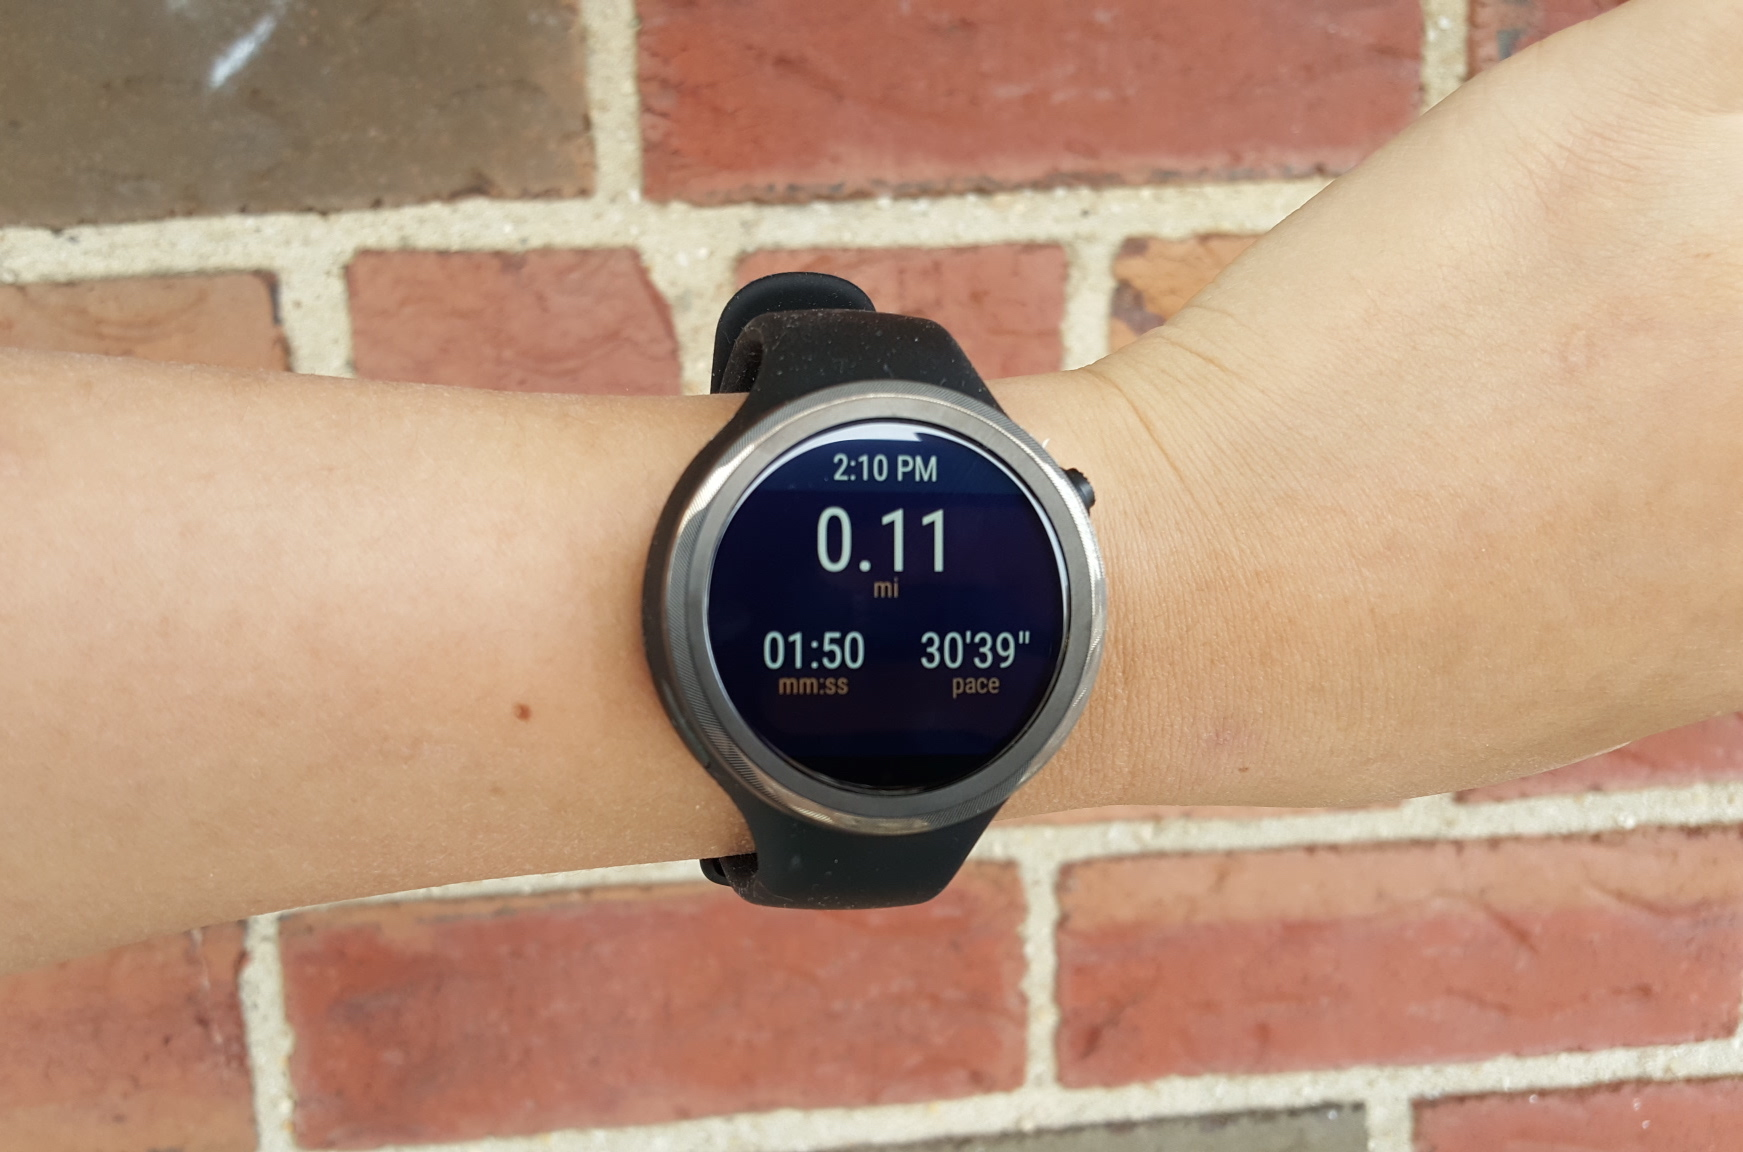 Moto 360 Sport review: If you haven't bought it yet, you're better off waiting